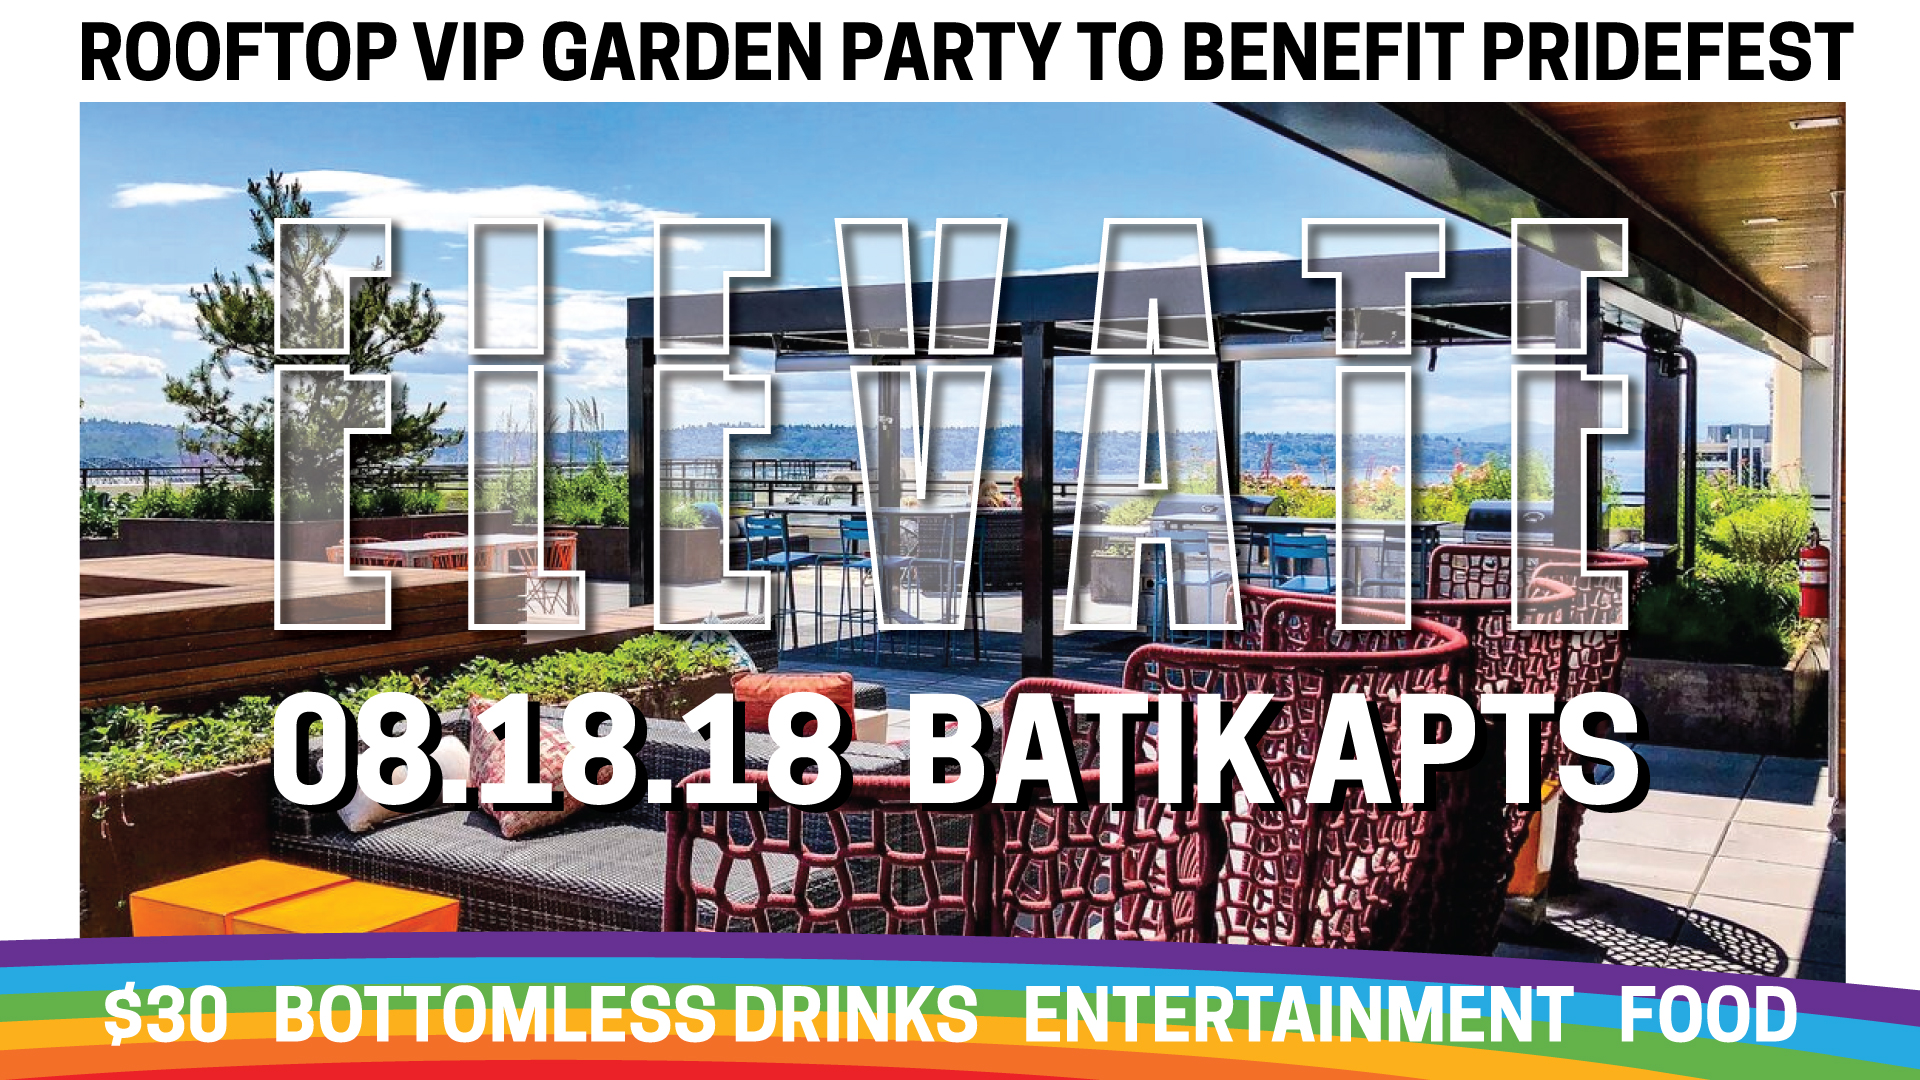 Keep PrideFest free for all and help us raise money for smaller pride events throughout the Northwest. $30 includes entry, bottomless drinks, and appetizers. This VIP mixer is on the roof of Batik and looks out at Mount Rainier, Puget Sound, and Downtown Seattle. Featuring DJ Skiddle.